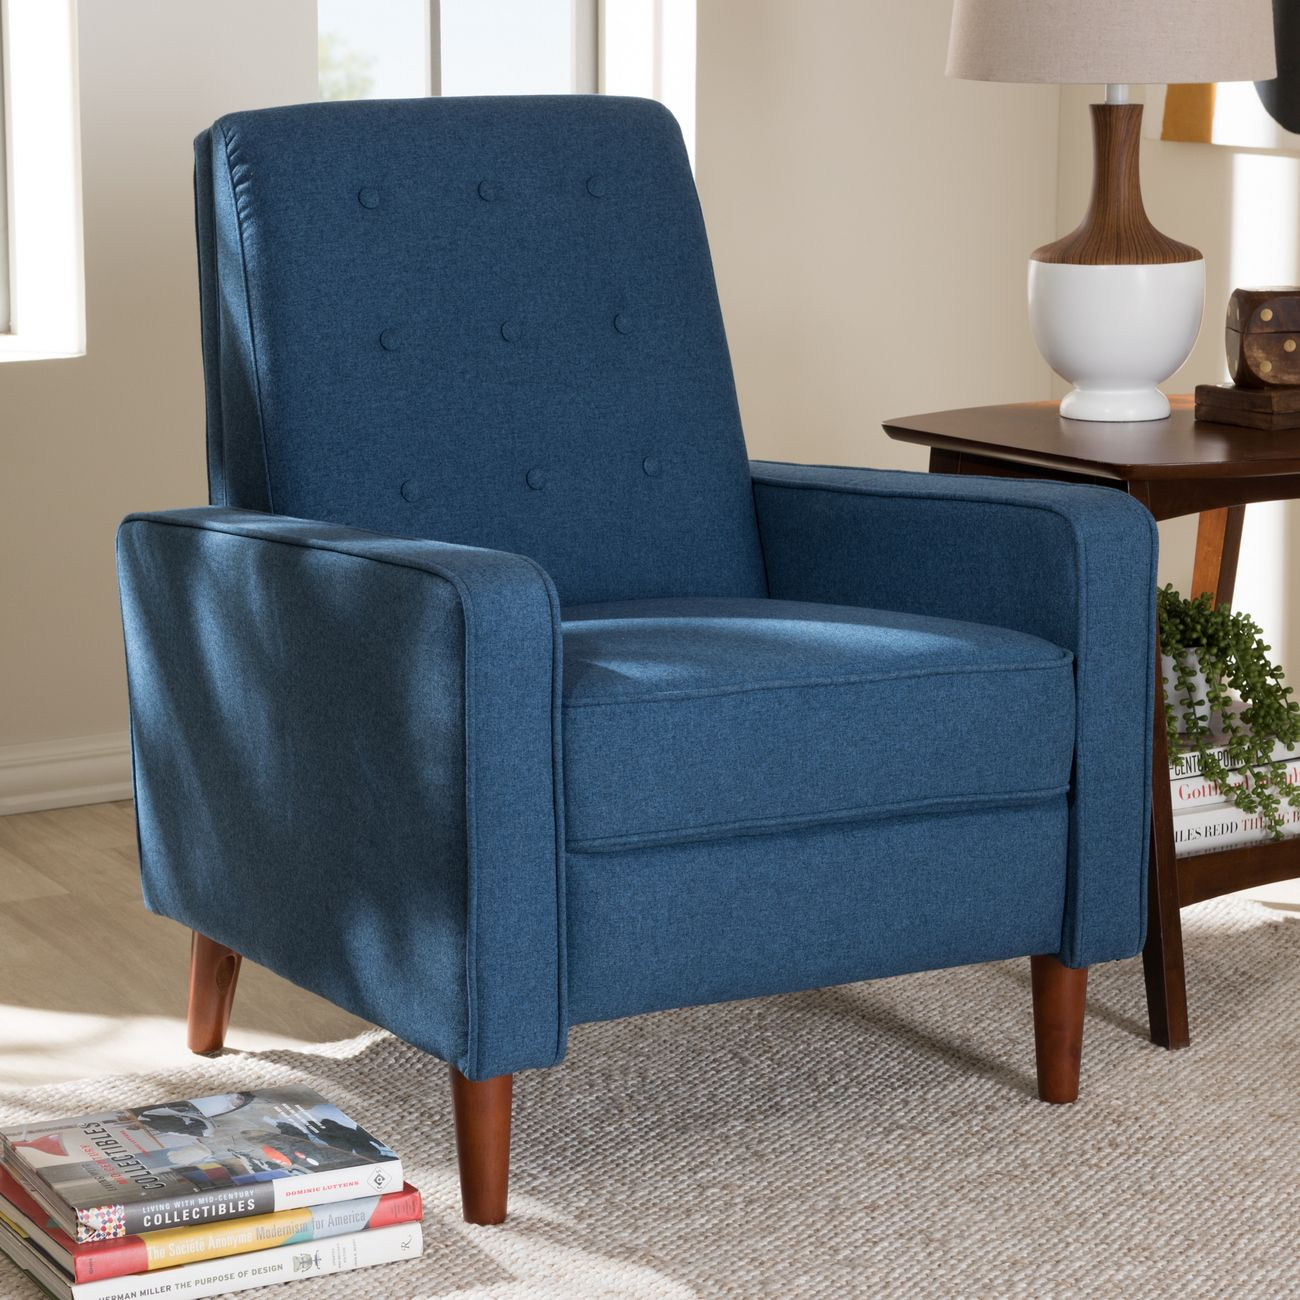 Picture of: Baxton Studio Mathias Mid Century Modern Blue Fabric Upholstered Lounge Chair 1705 Blue